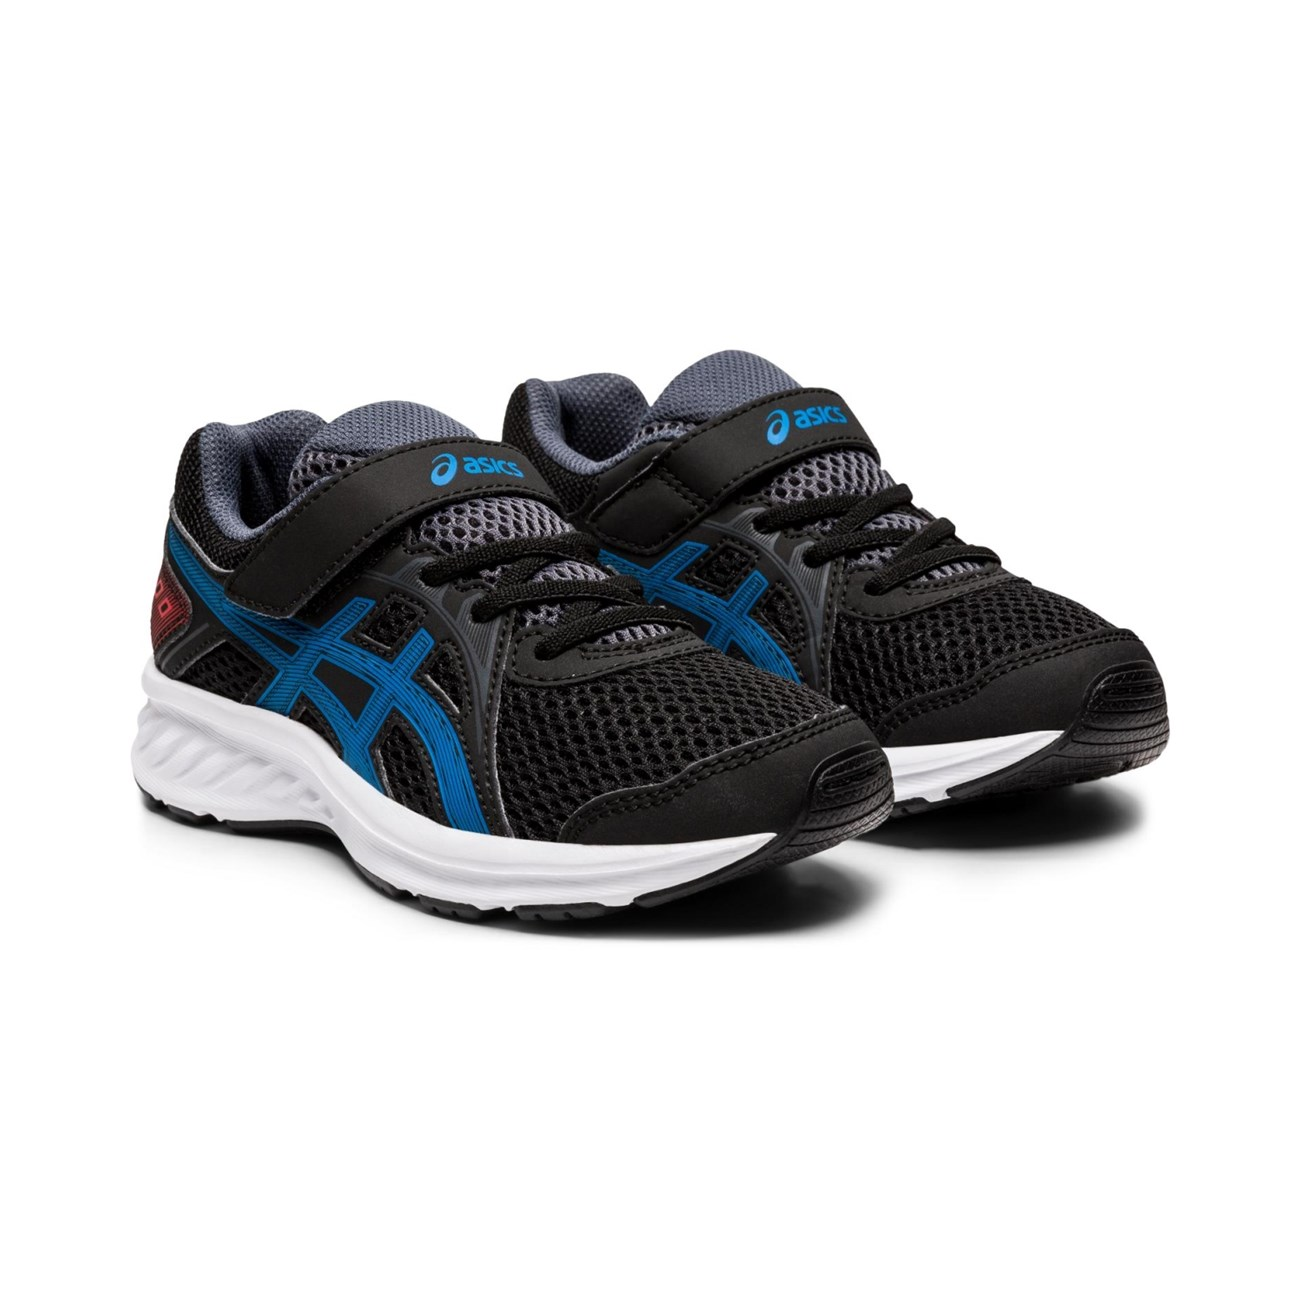 ASICS JOLT 2 PS 1014A034-006 - INTERSPORT